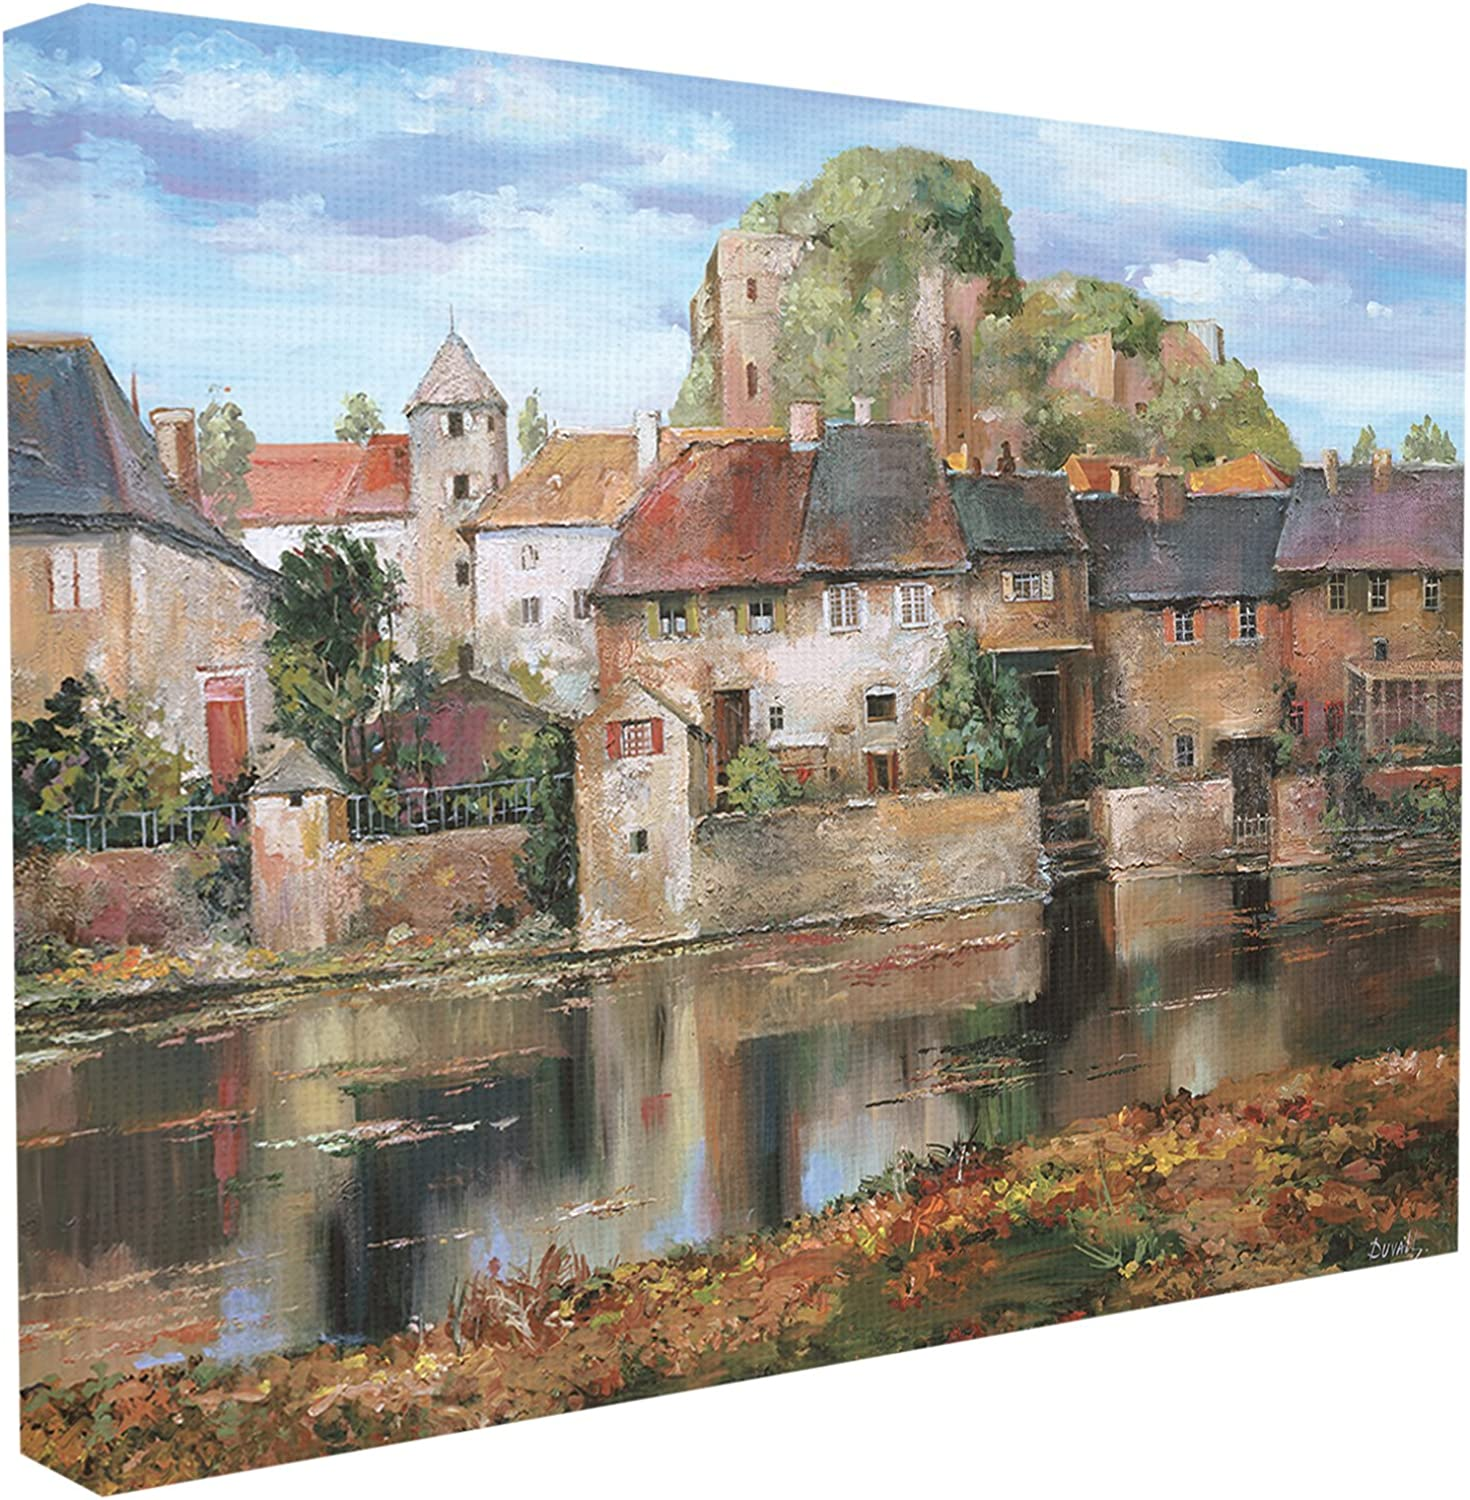 The Stupell Home Decor Collection Village on A Lake Stretched Canvas Wall Art